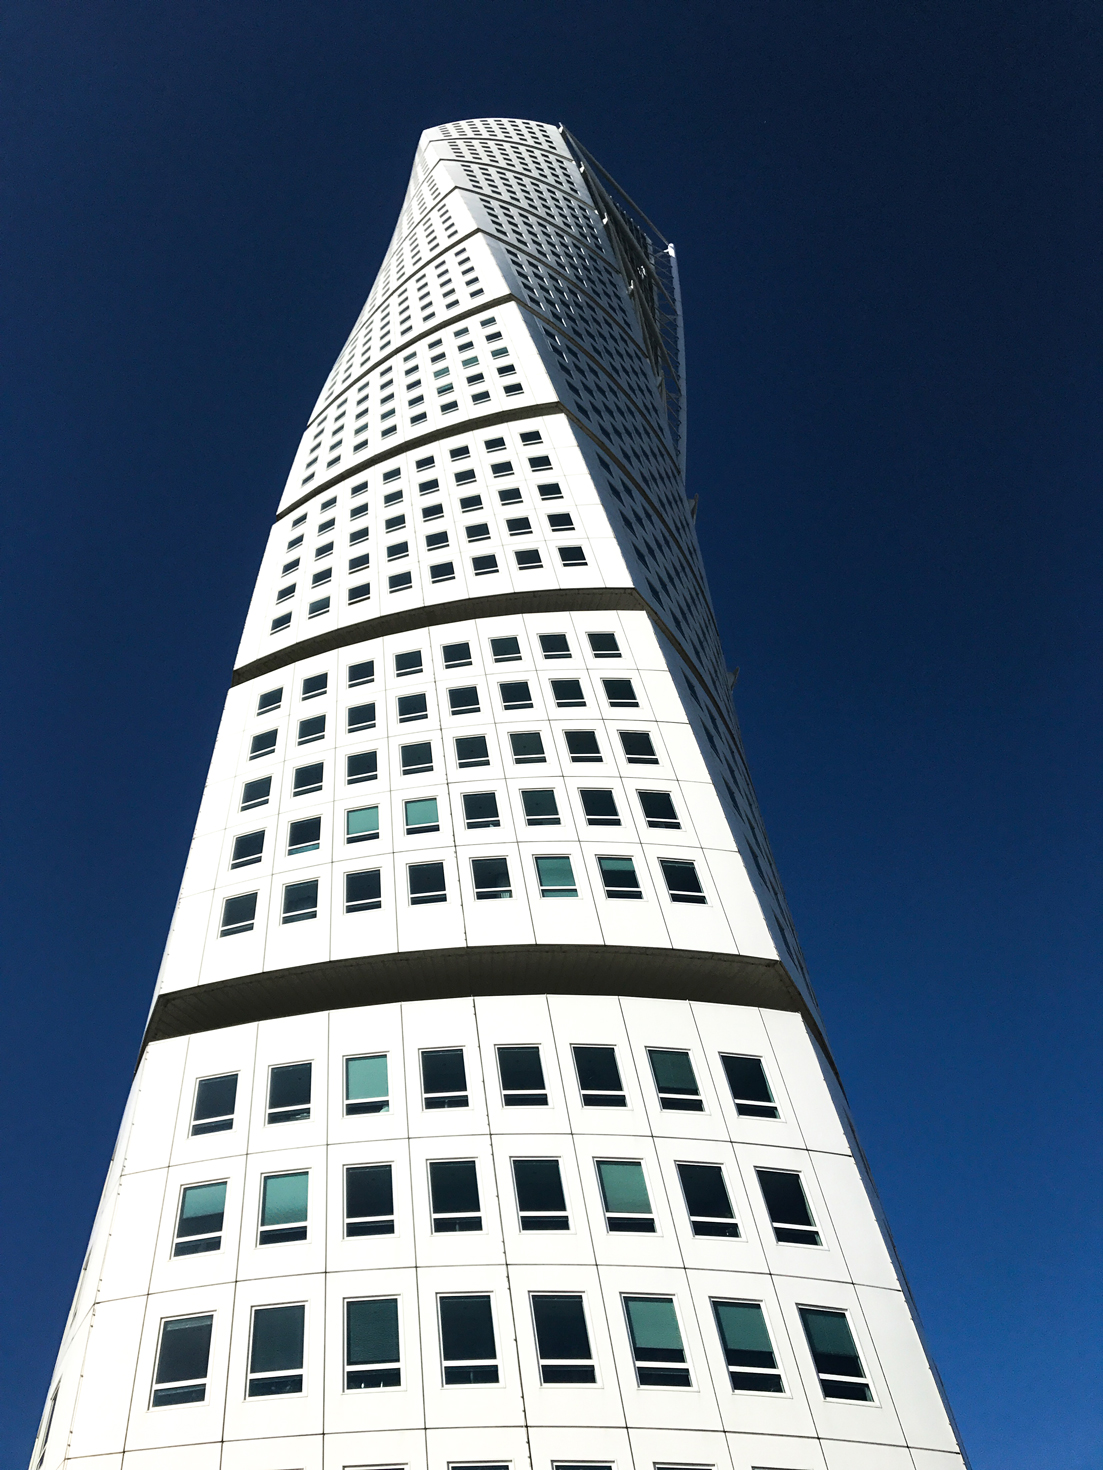 Turning Torso | HungryHeart.se